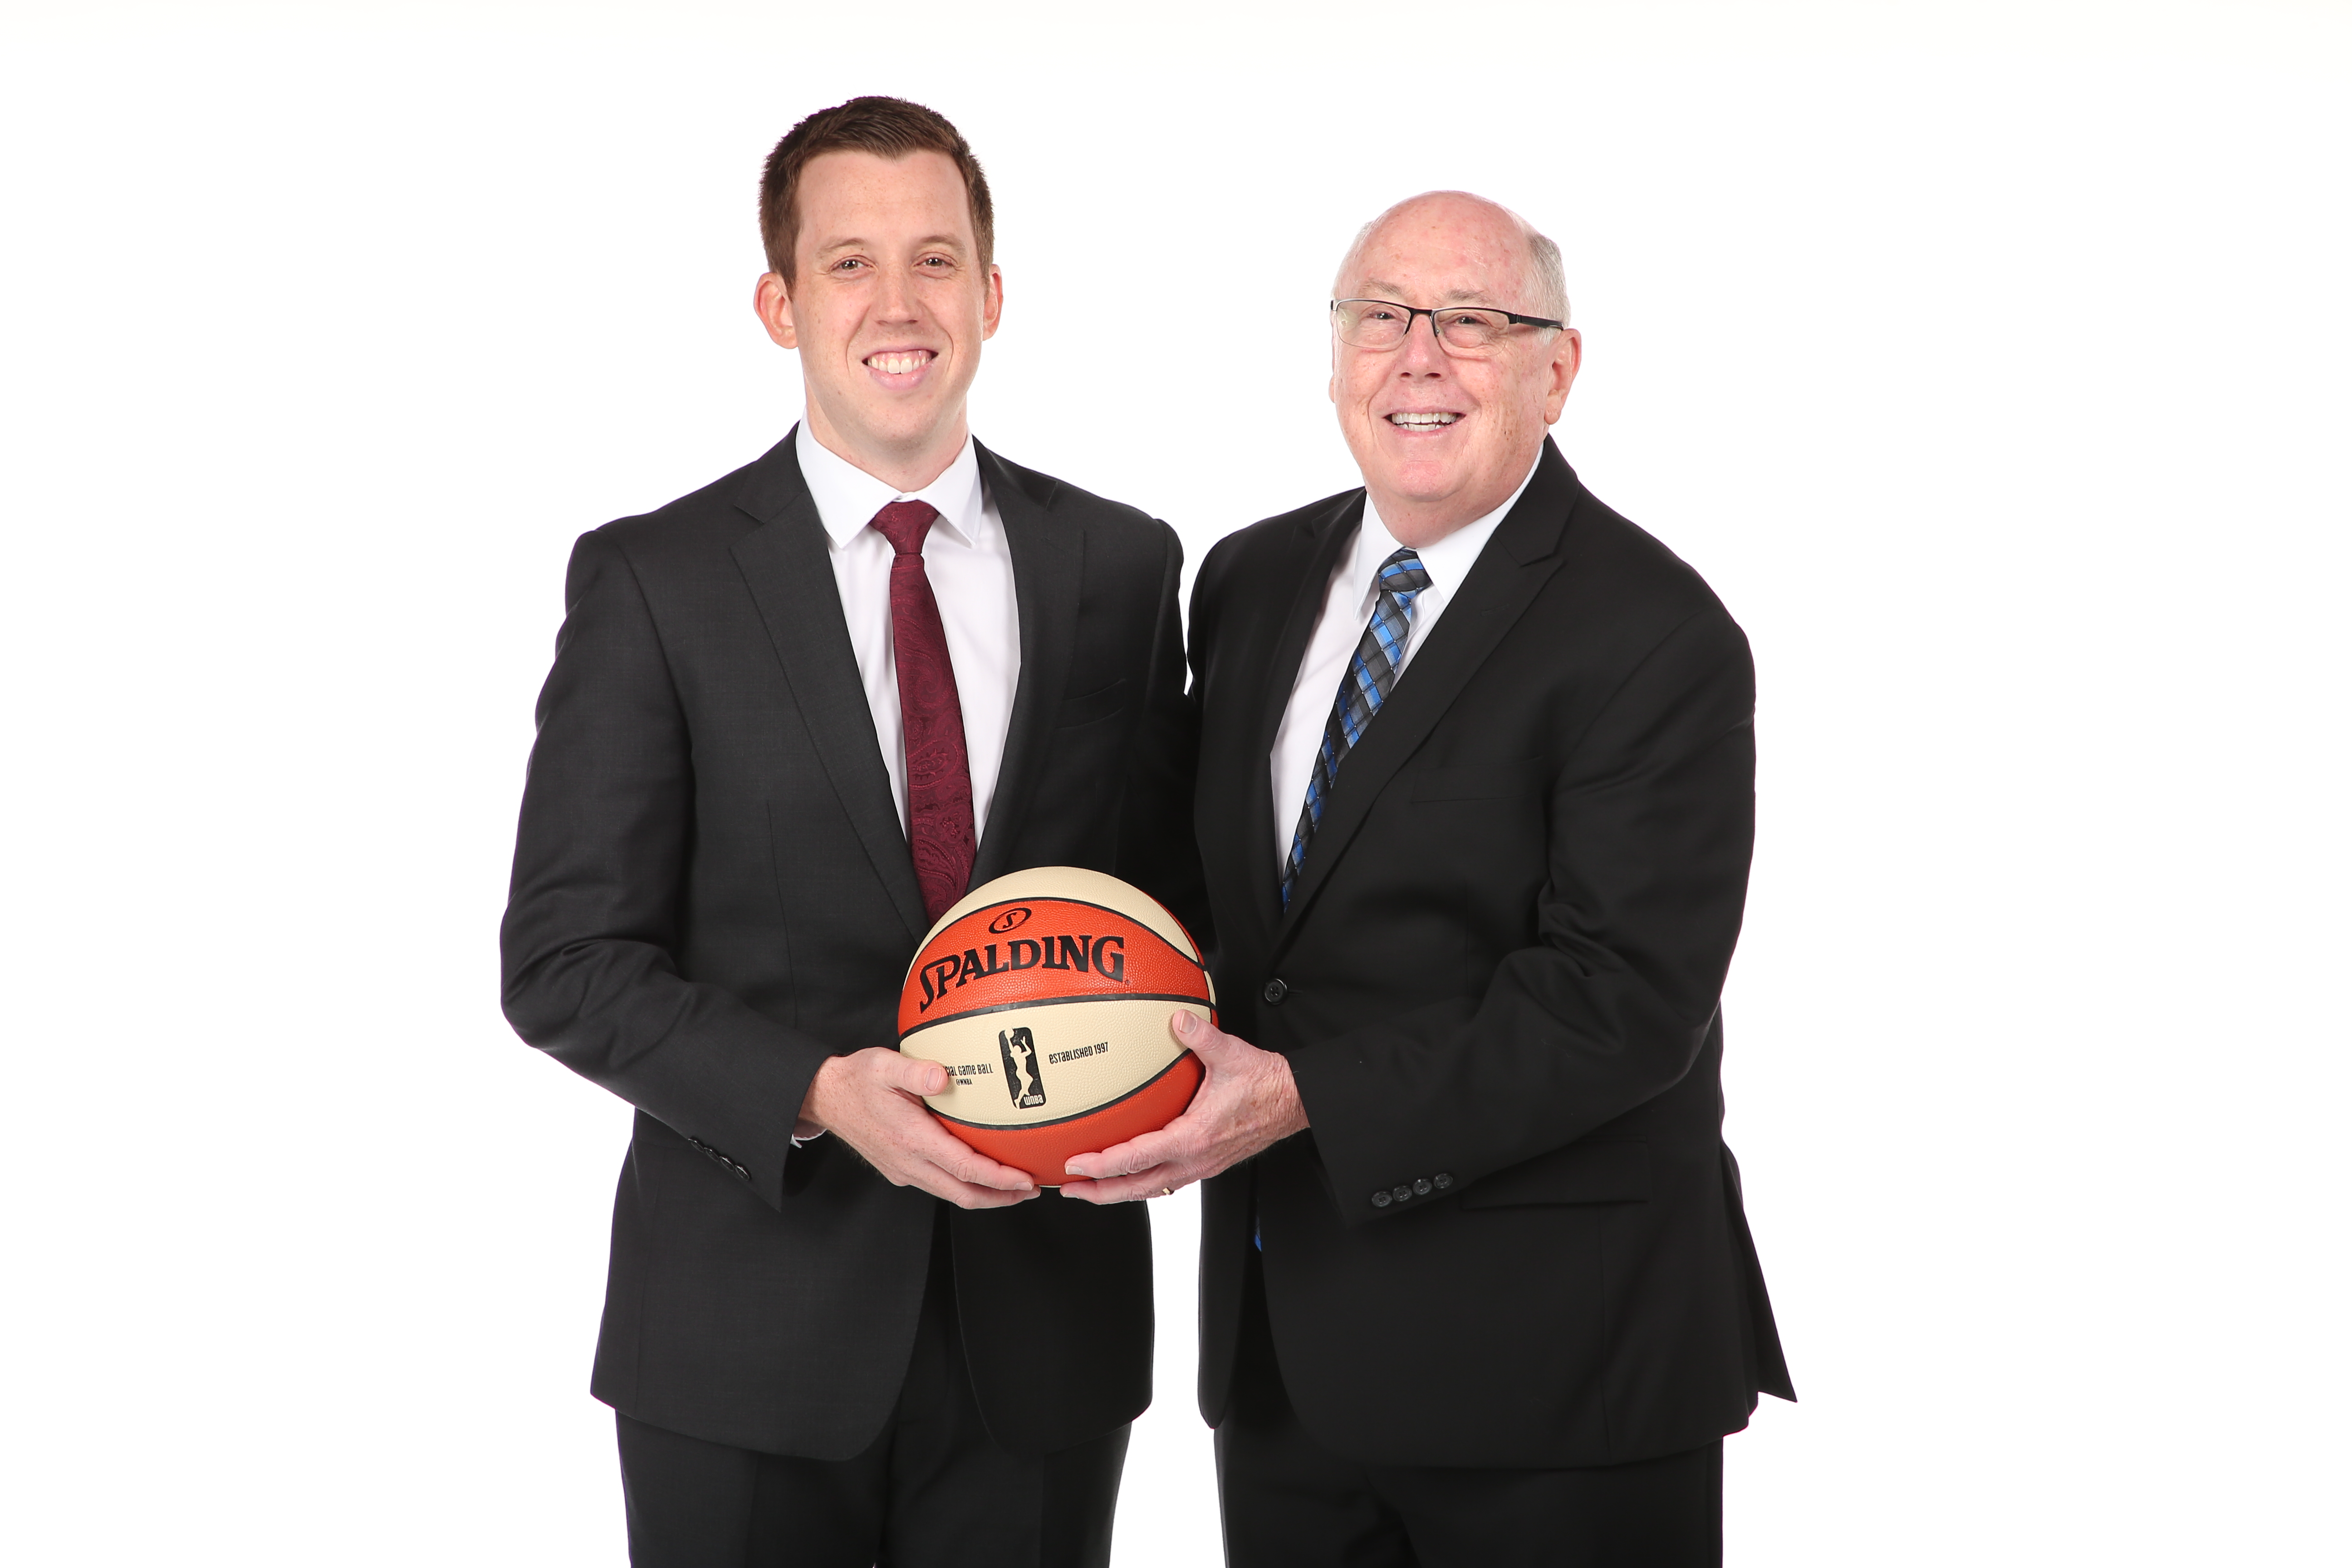 Mike Thibault, Mystics coach, has heir apparent in the family